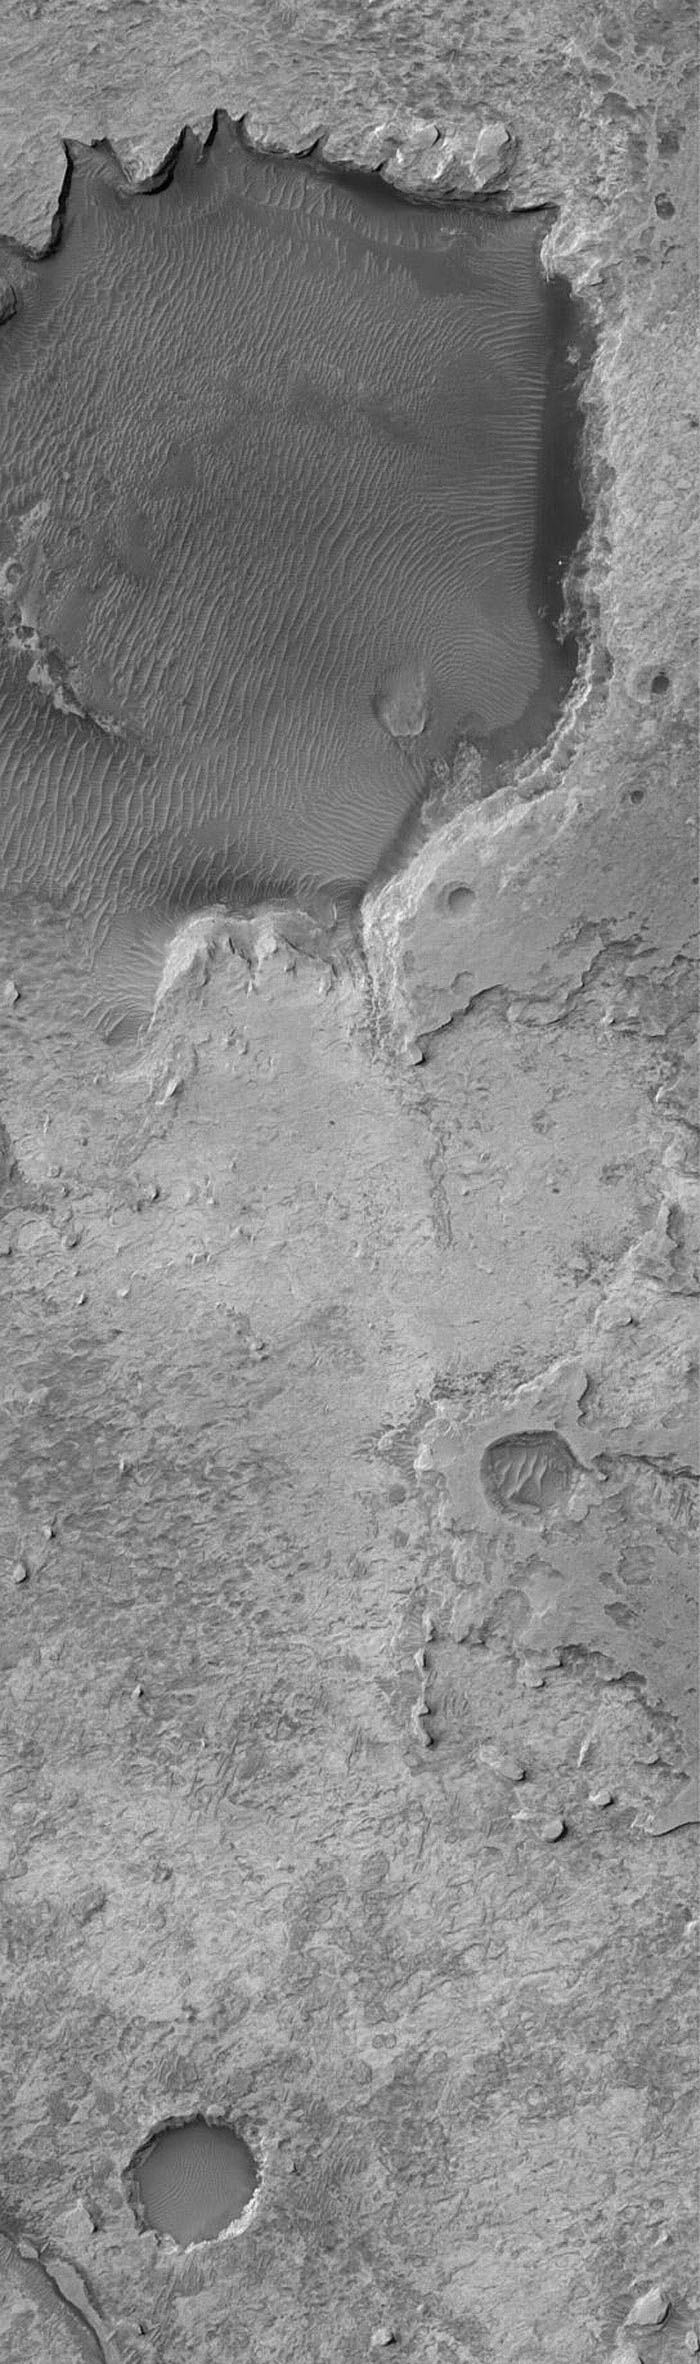 NASA's Mars Global Surveyor shows Sinus Meridiani, the site of the largest outcropping of light-toned, layered sedimentary rocks on Mars. Sedimentary rocks are covered by a regolith of windblown sand and granules.